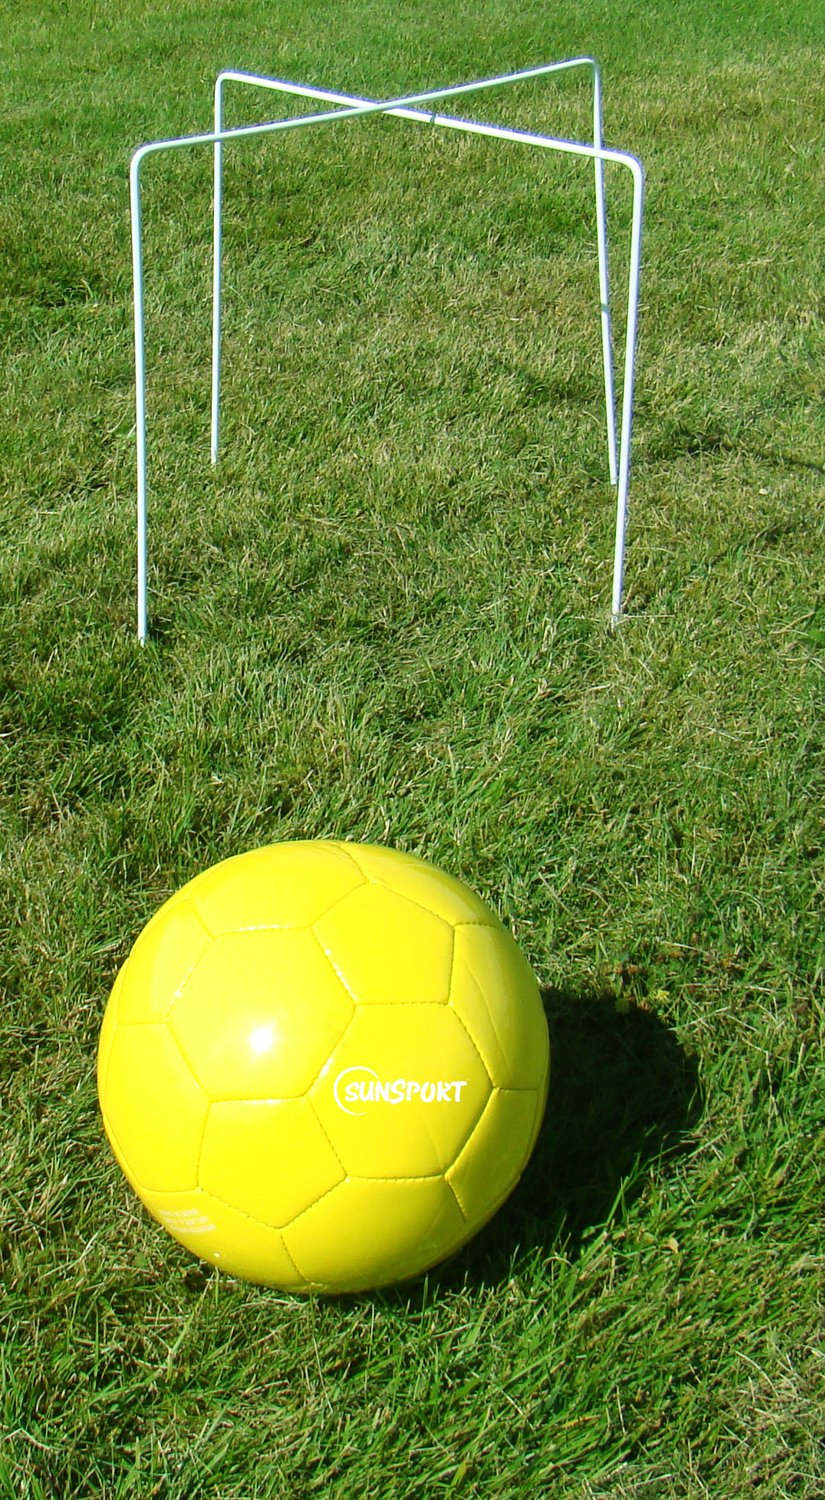 Sunsport Football Croquet Set Liberty Games